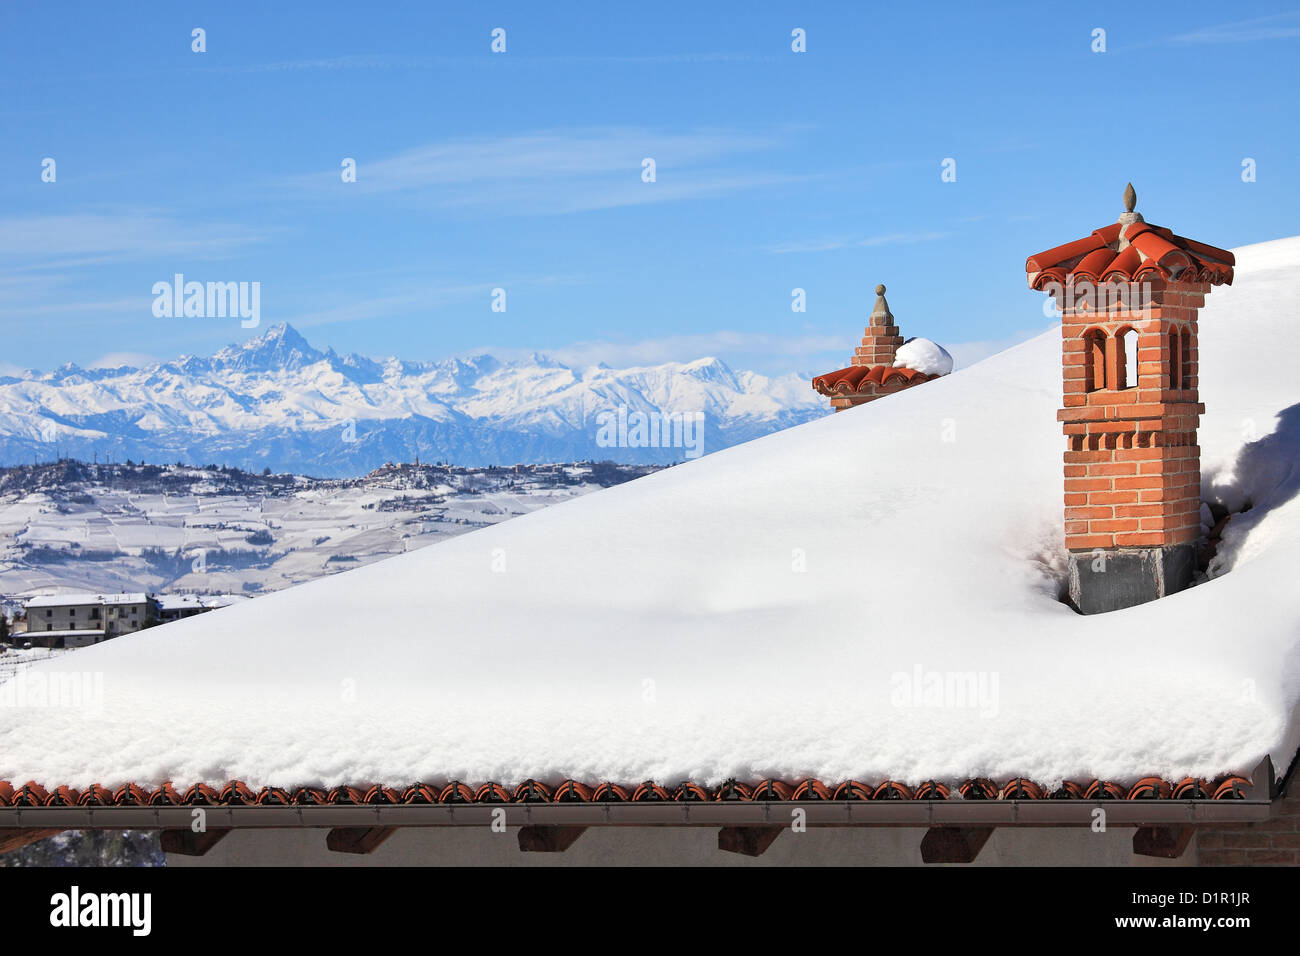 Red brick chimney on the roof covered by snow and snowy mountains on the background under blue winter sky in Piedmont, - Stock Image